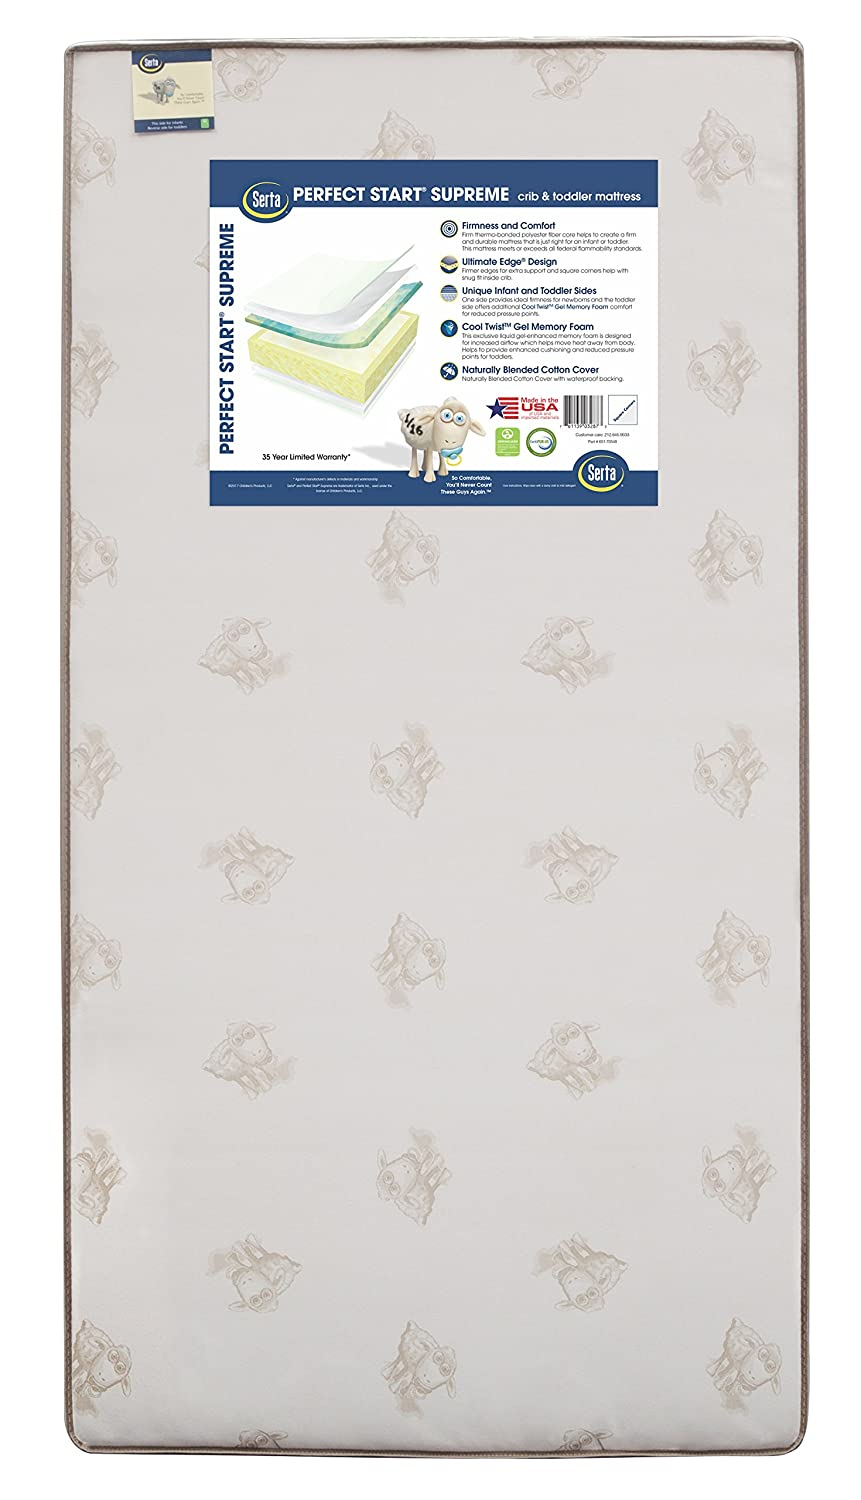 Serta Perfect Start Supreme Fiber Core/Memory Foam Crib and Toddler Mattress | Waterproof | GREENGUARD Gold Certified (Natural/Non-Toxic) Children's Products A41134-1026